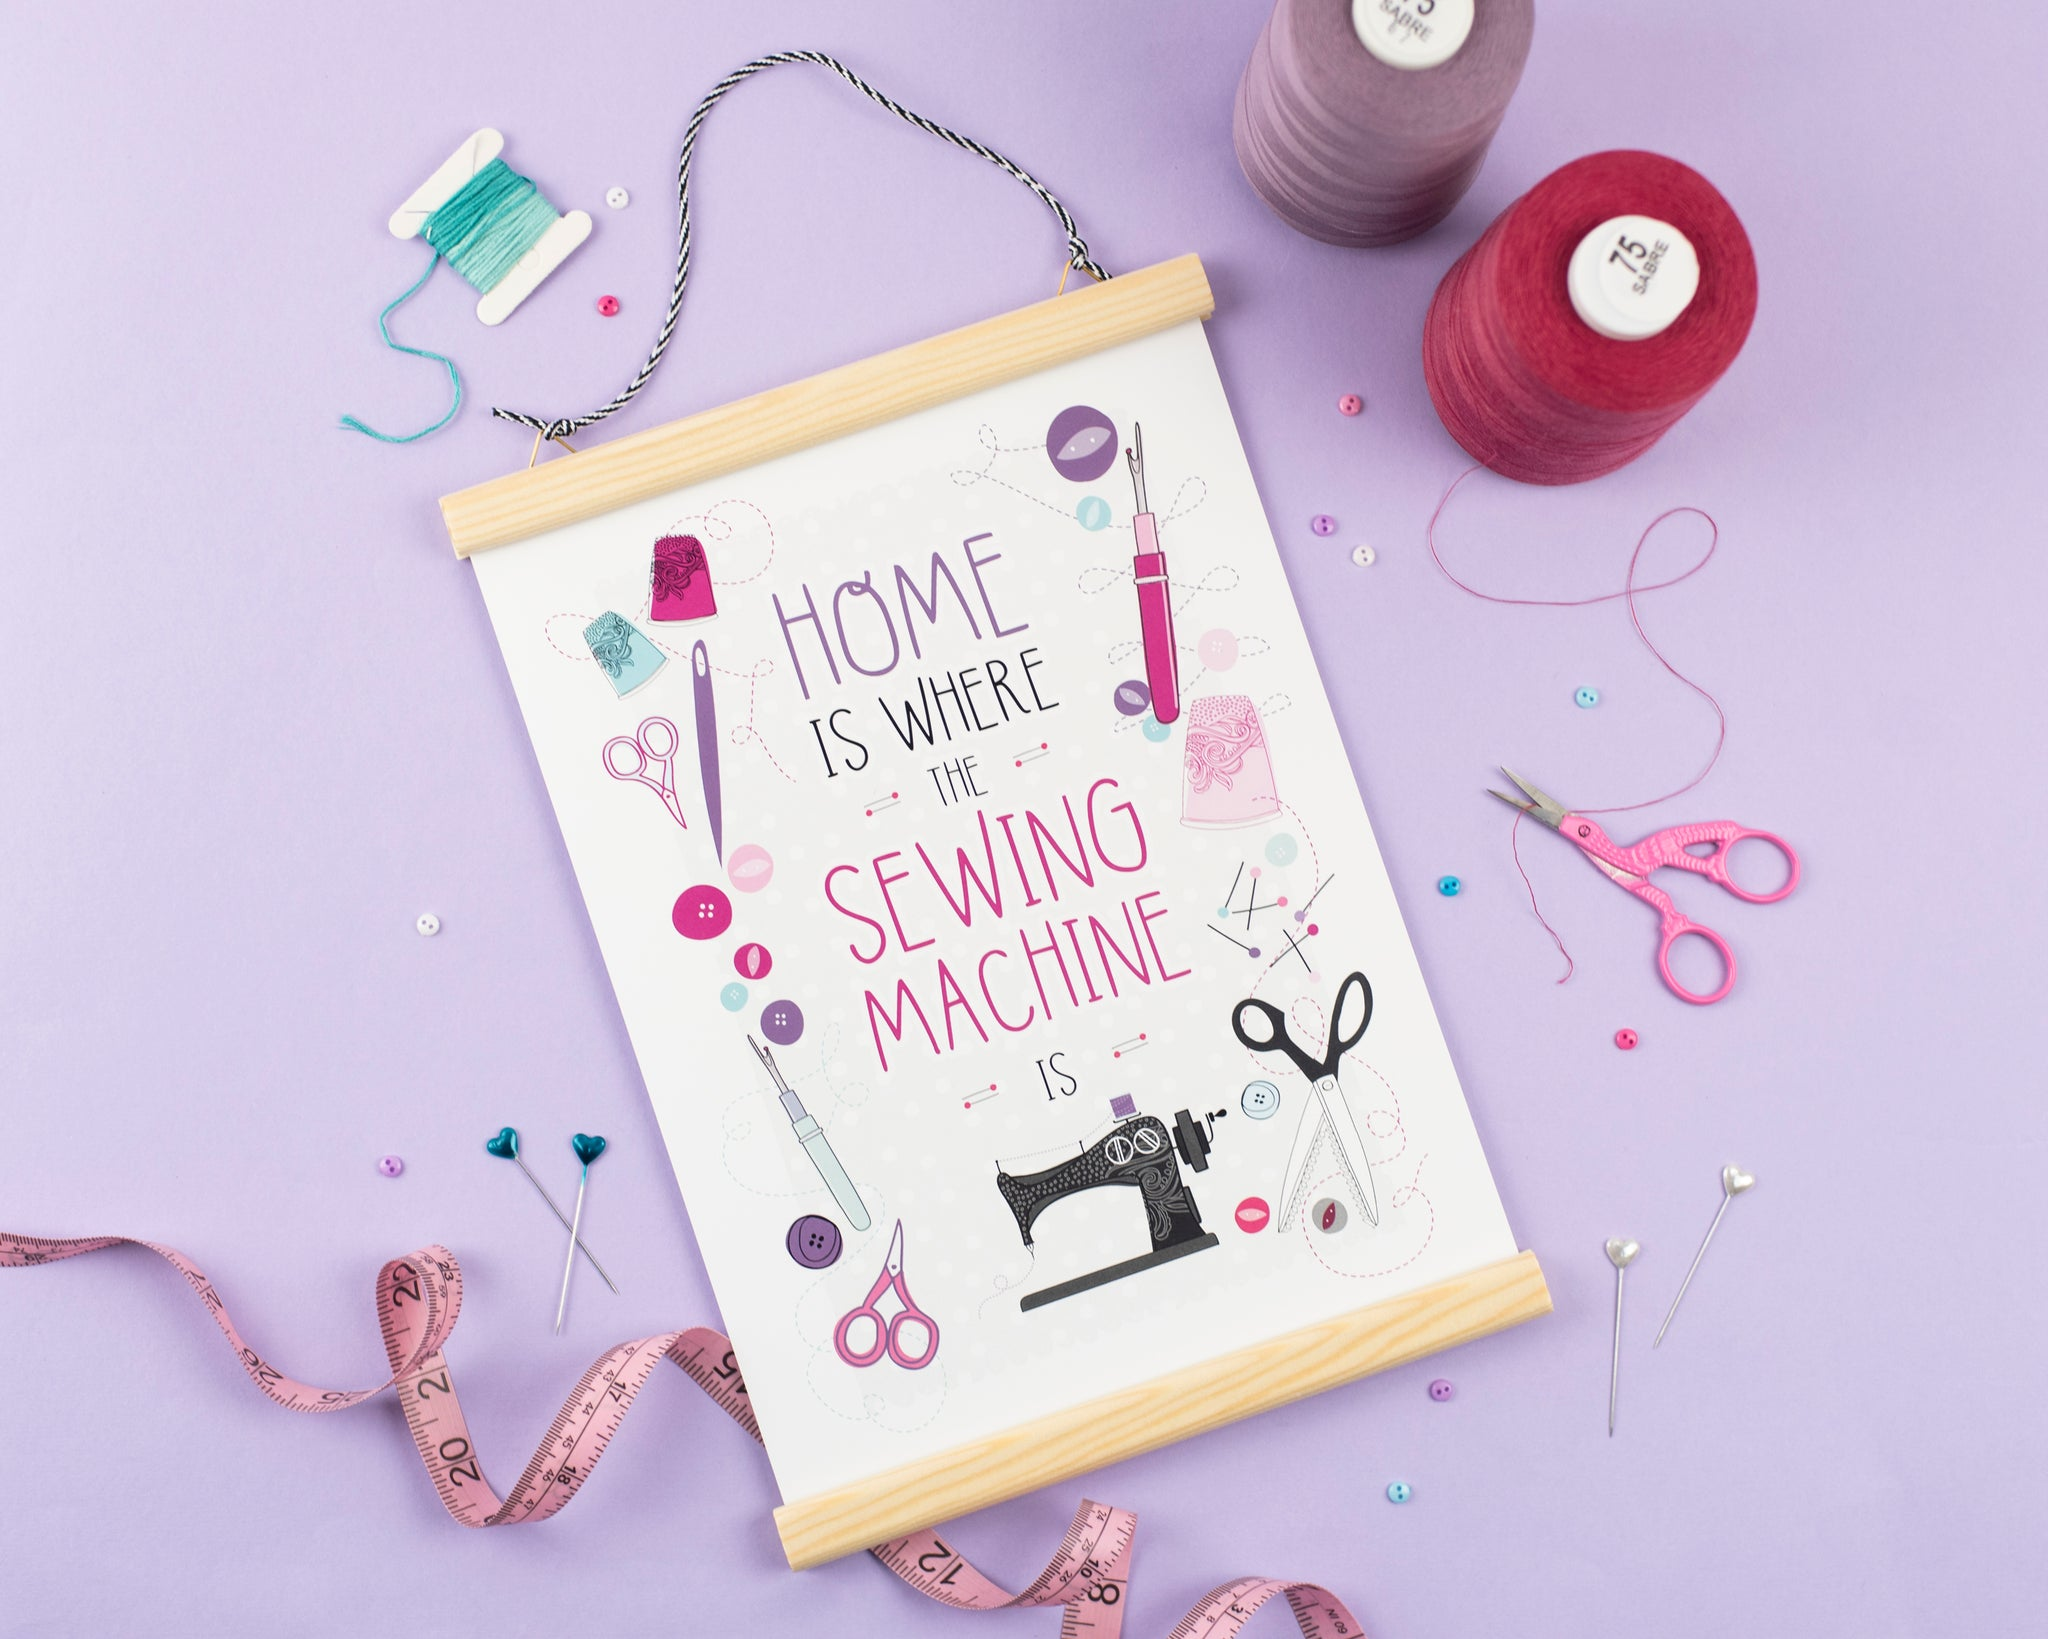 Home is where the sewing machine is - A4 Print - Two For Joy Illustration